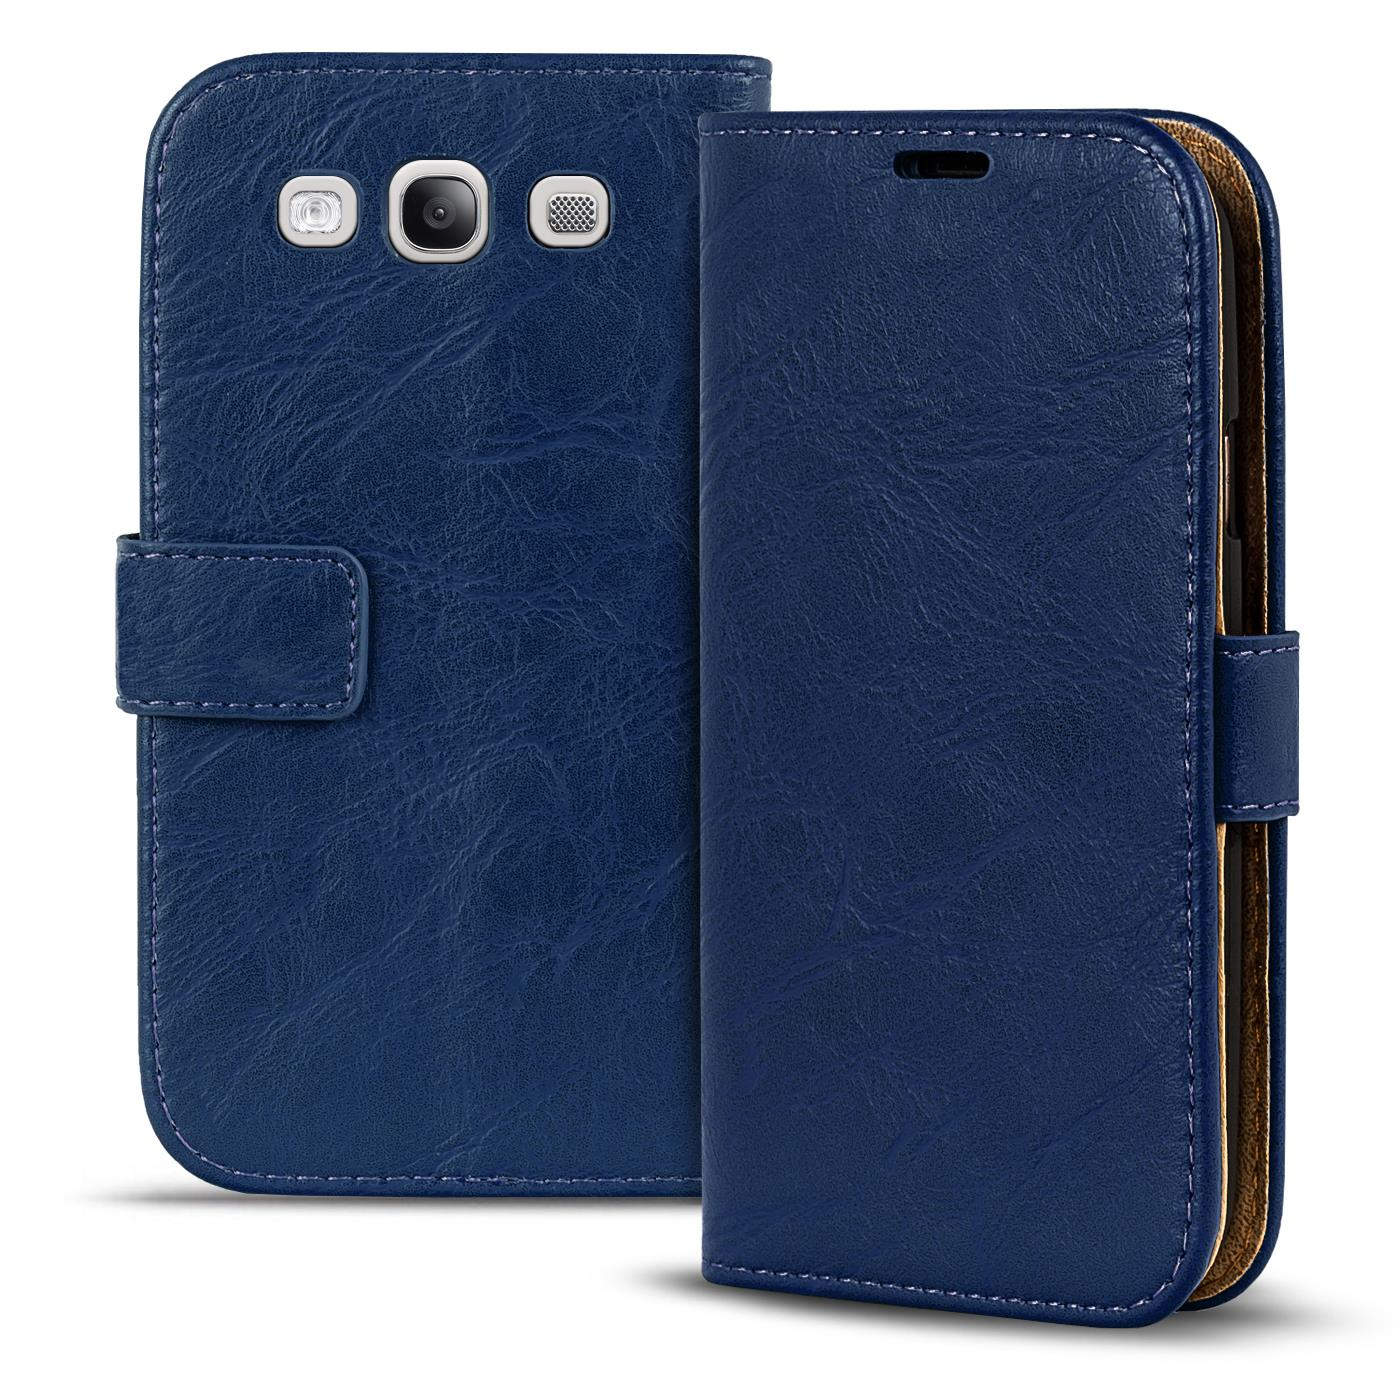 super popular 0d5a6 65411 Mobile Phone Case Samsung Galaxy S3 Neo Flip Cover Protective Wallet